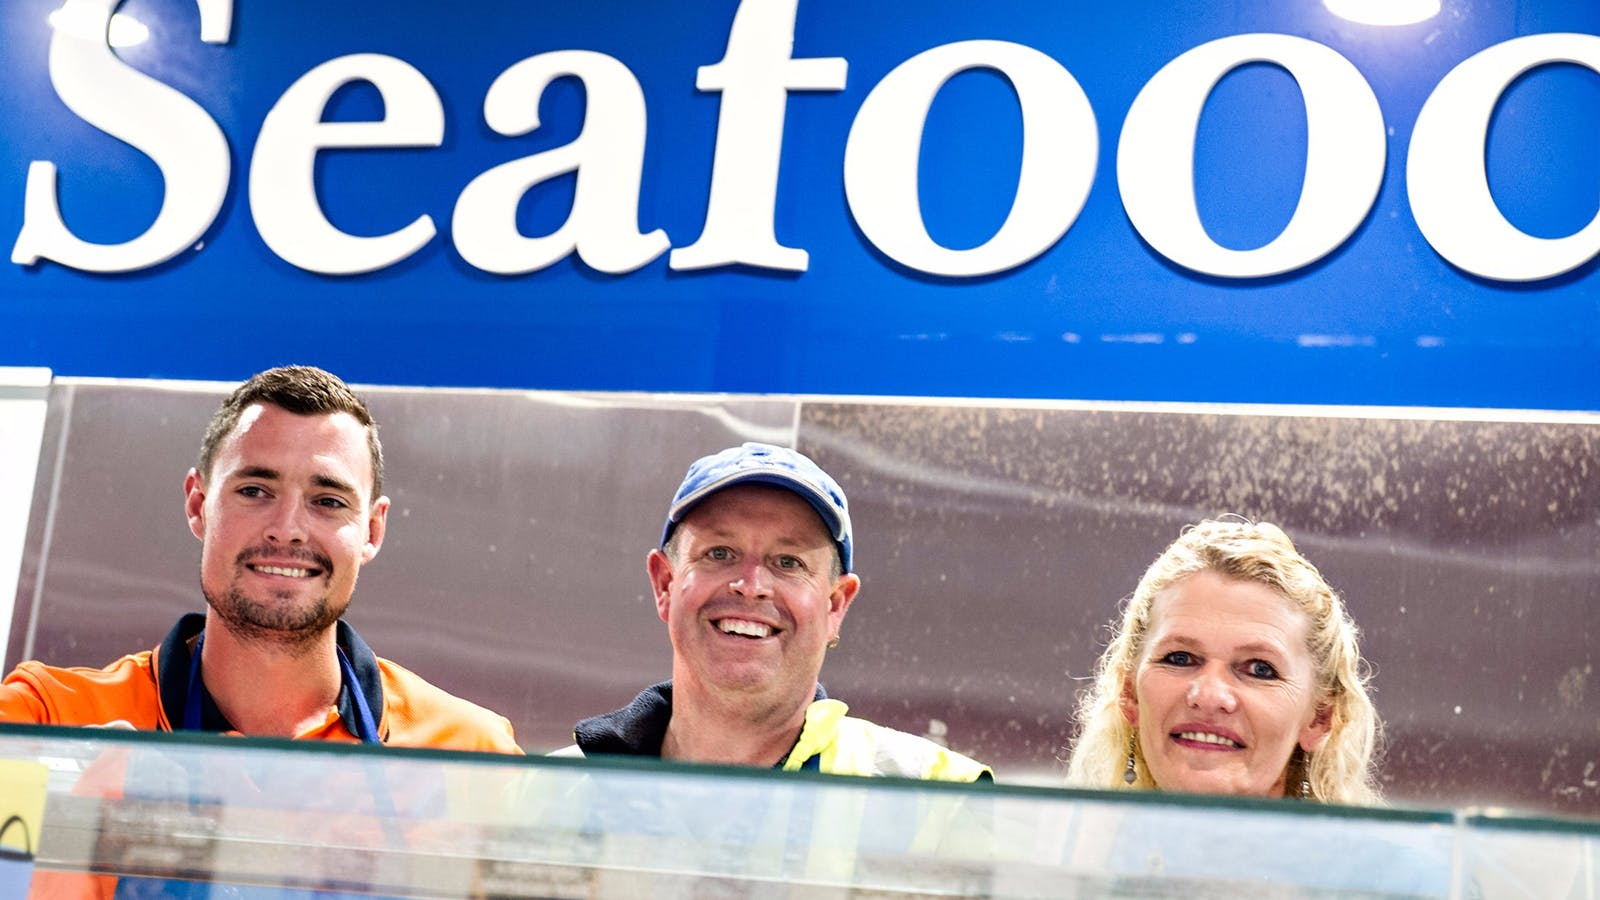 Three staff from Schwarze Seafood smile at teh camera